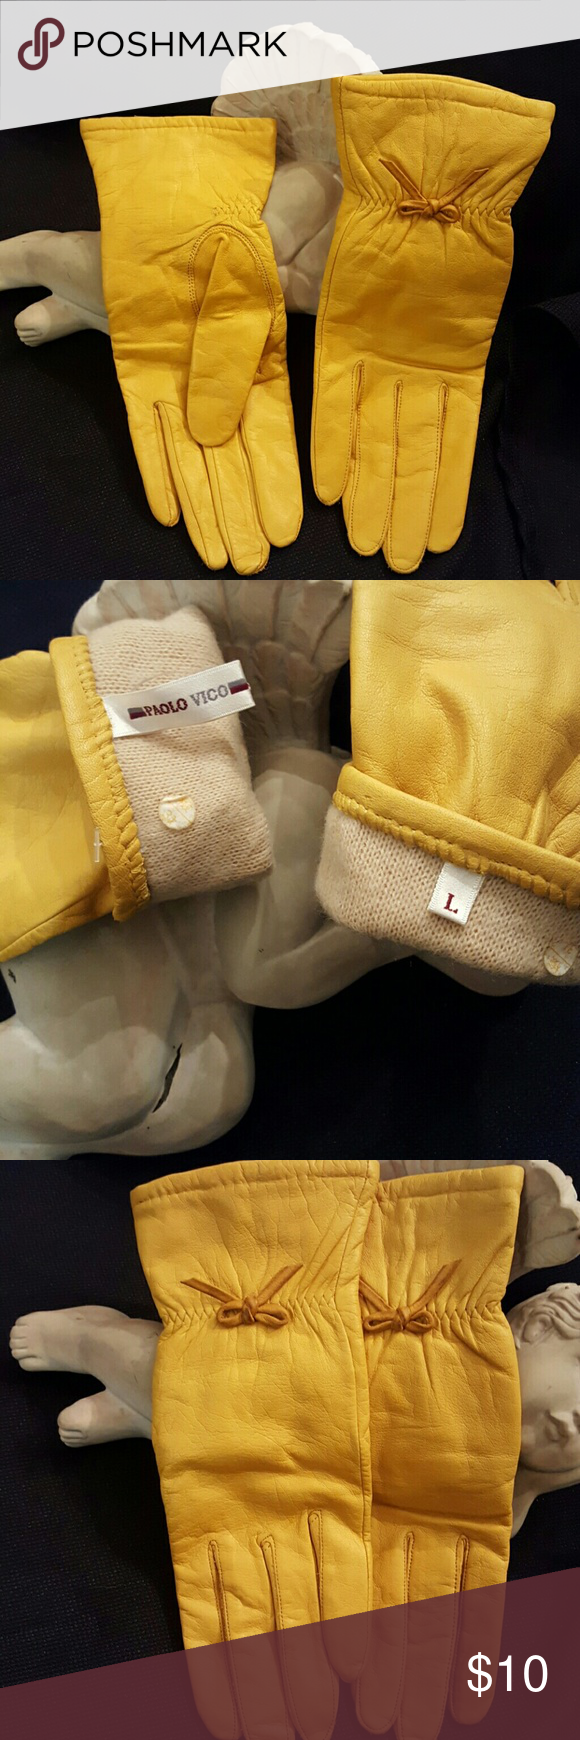 Ladies leather gloves yellow - Paolo Vico Leather Gloves Ladies Large Buttery Soft Yellow Leather Gloves By Paolo Vico Size